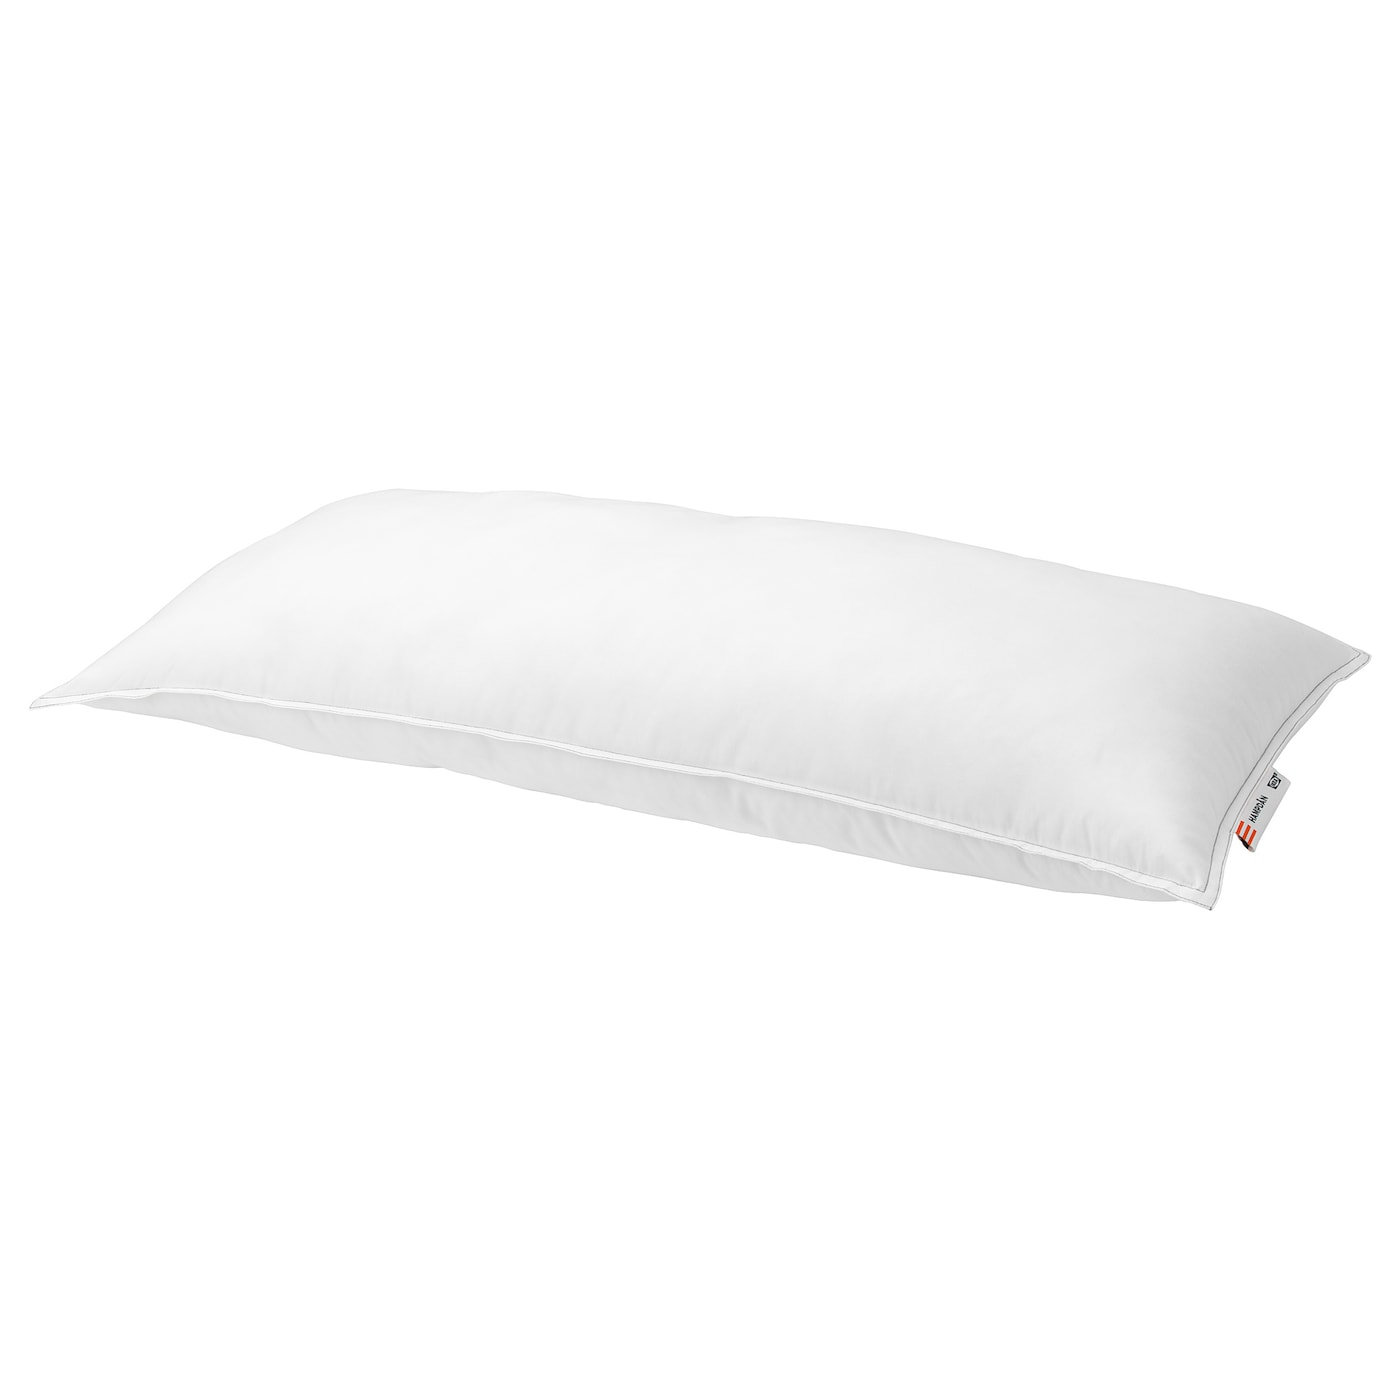 IKEA HAMPDÅN pillow, firmer The ball fibre filling is pliable, airy and easy to fluff.